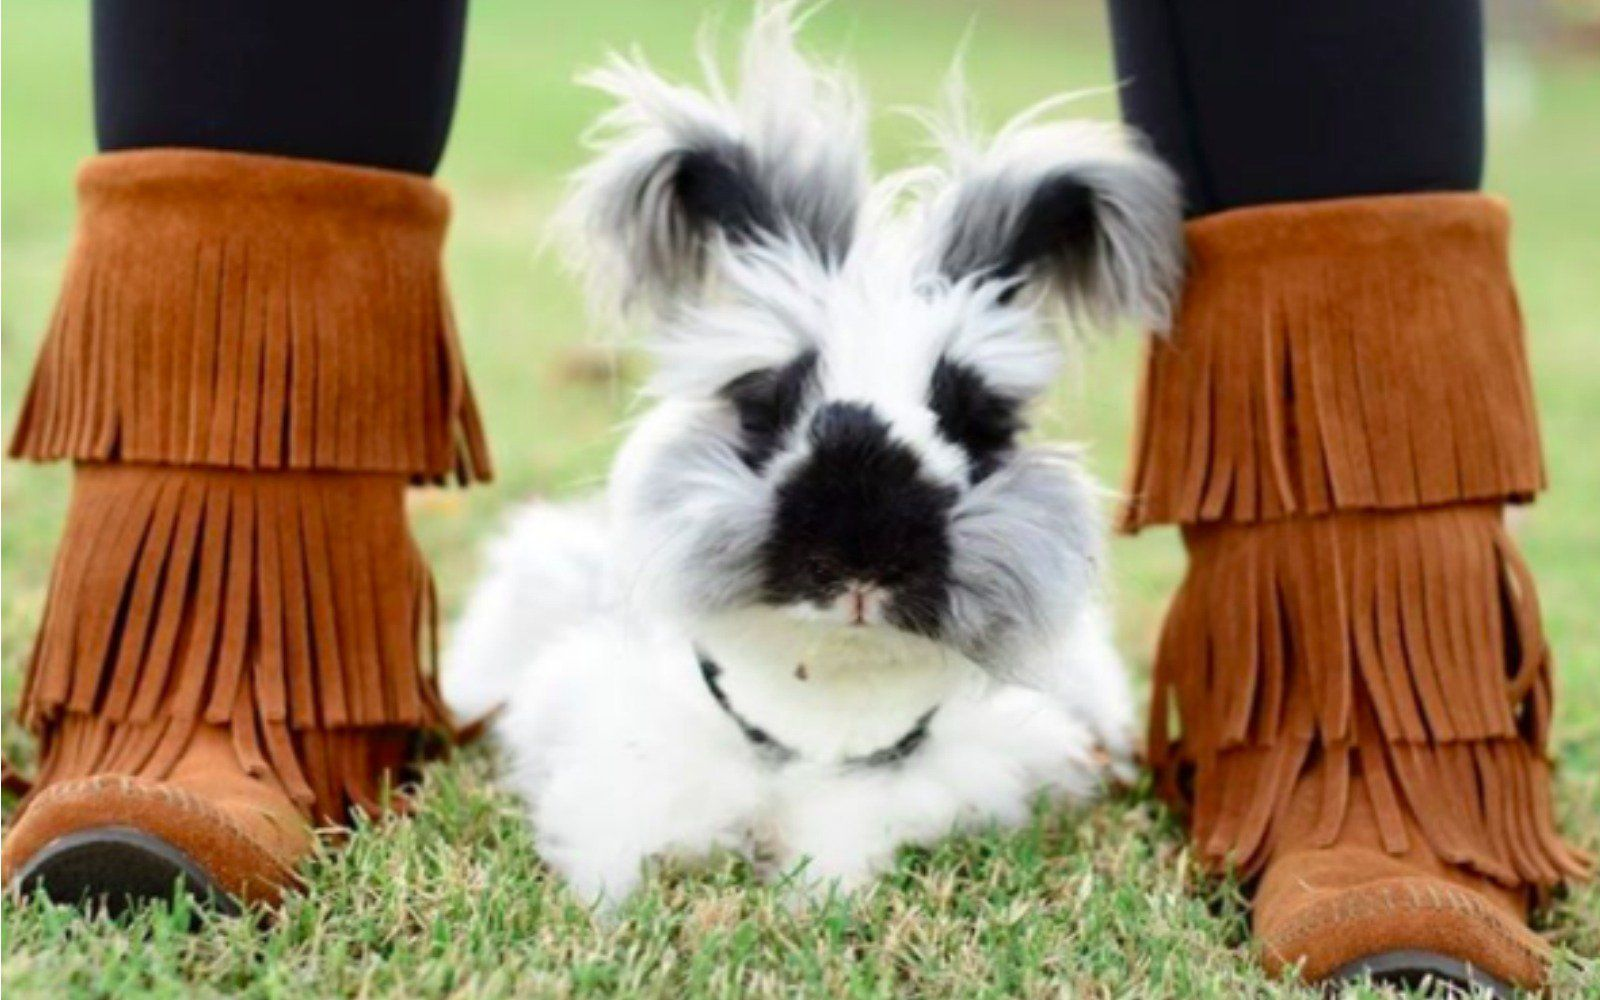 Is He a Puppy or a Bunny? Check Out This Adorable Adopted